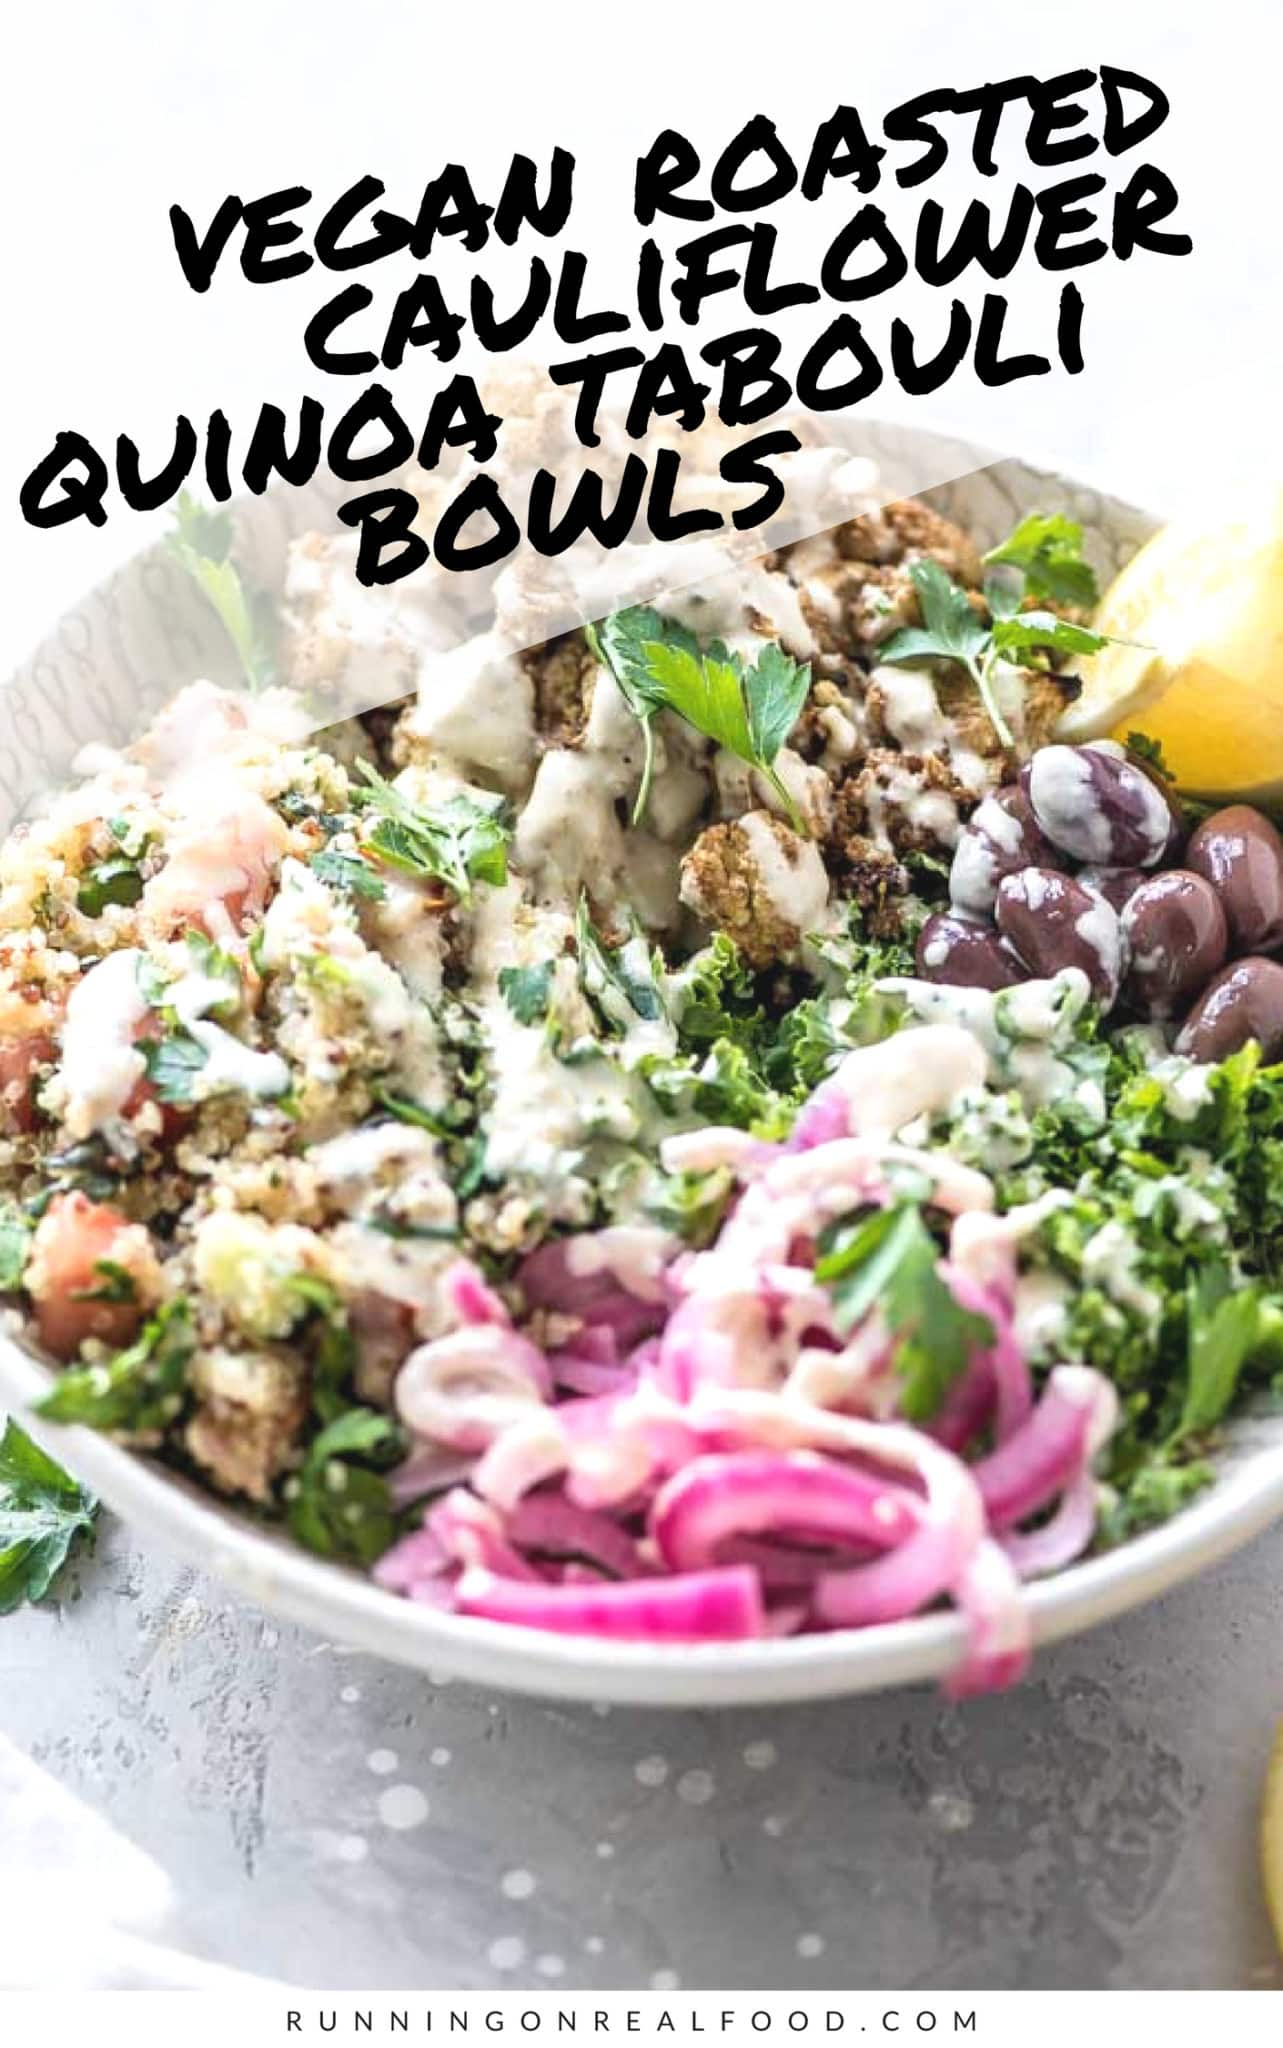 Try these delicious and flavourful roasted cauliflower and quinoa tabouli bowls for dinner tonight! Homemade pickled onions, olives and tahini sauce bring it all together. Vegan and gluten-free.#roastedcauliflower #quinoa #quinoasalad #buddhabowl #cauliflowerrecipes #vegandinnerideas #vegandinnerrecipes #easyveganrecipes #healthyrecipes #saladrecipes #tahinisauce #plantbasedrecipes